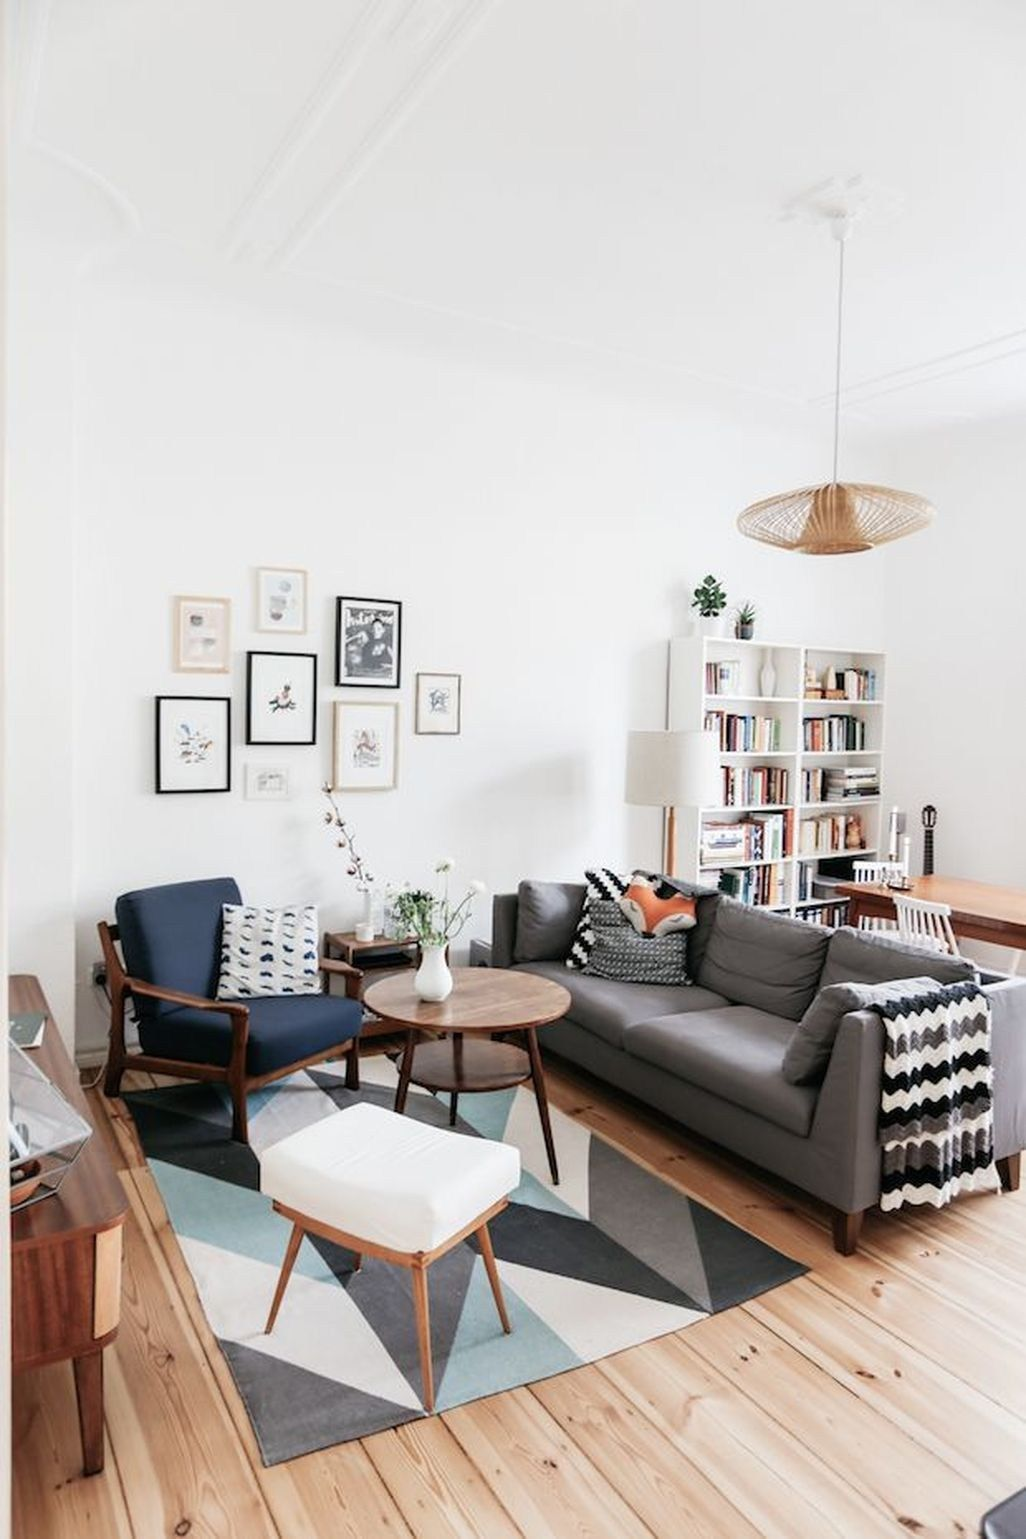 Endearing Inexpensive Living Room Decorating Ideas Of Apartment Decor Homehihoo